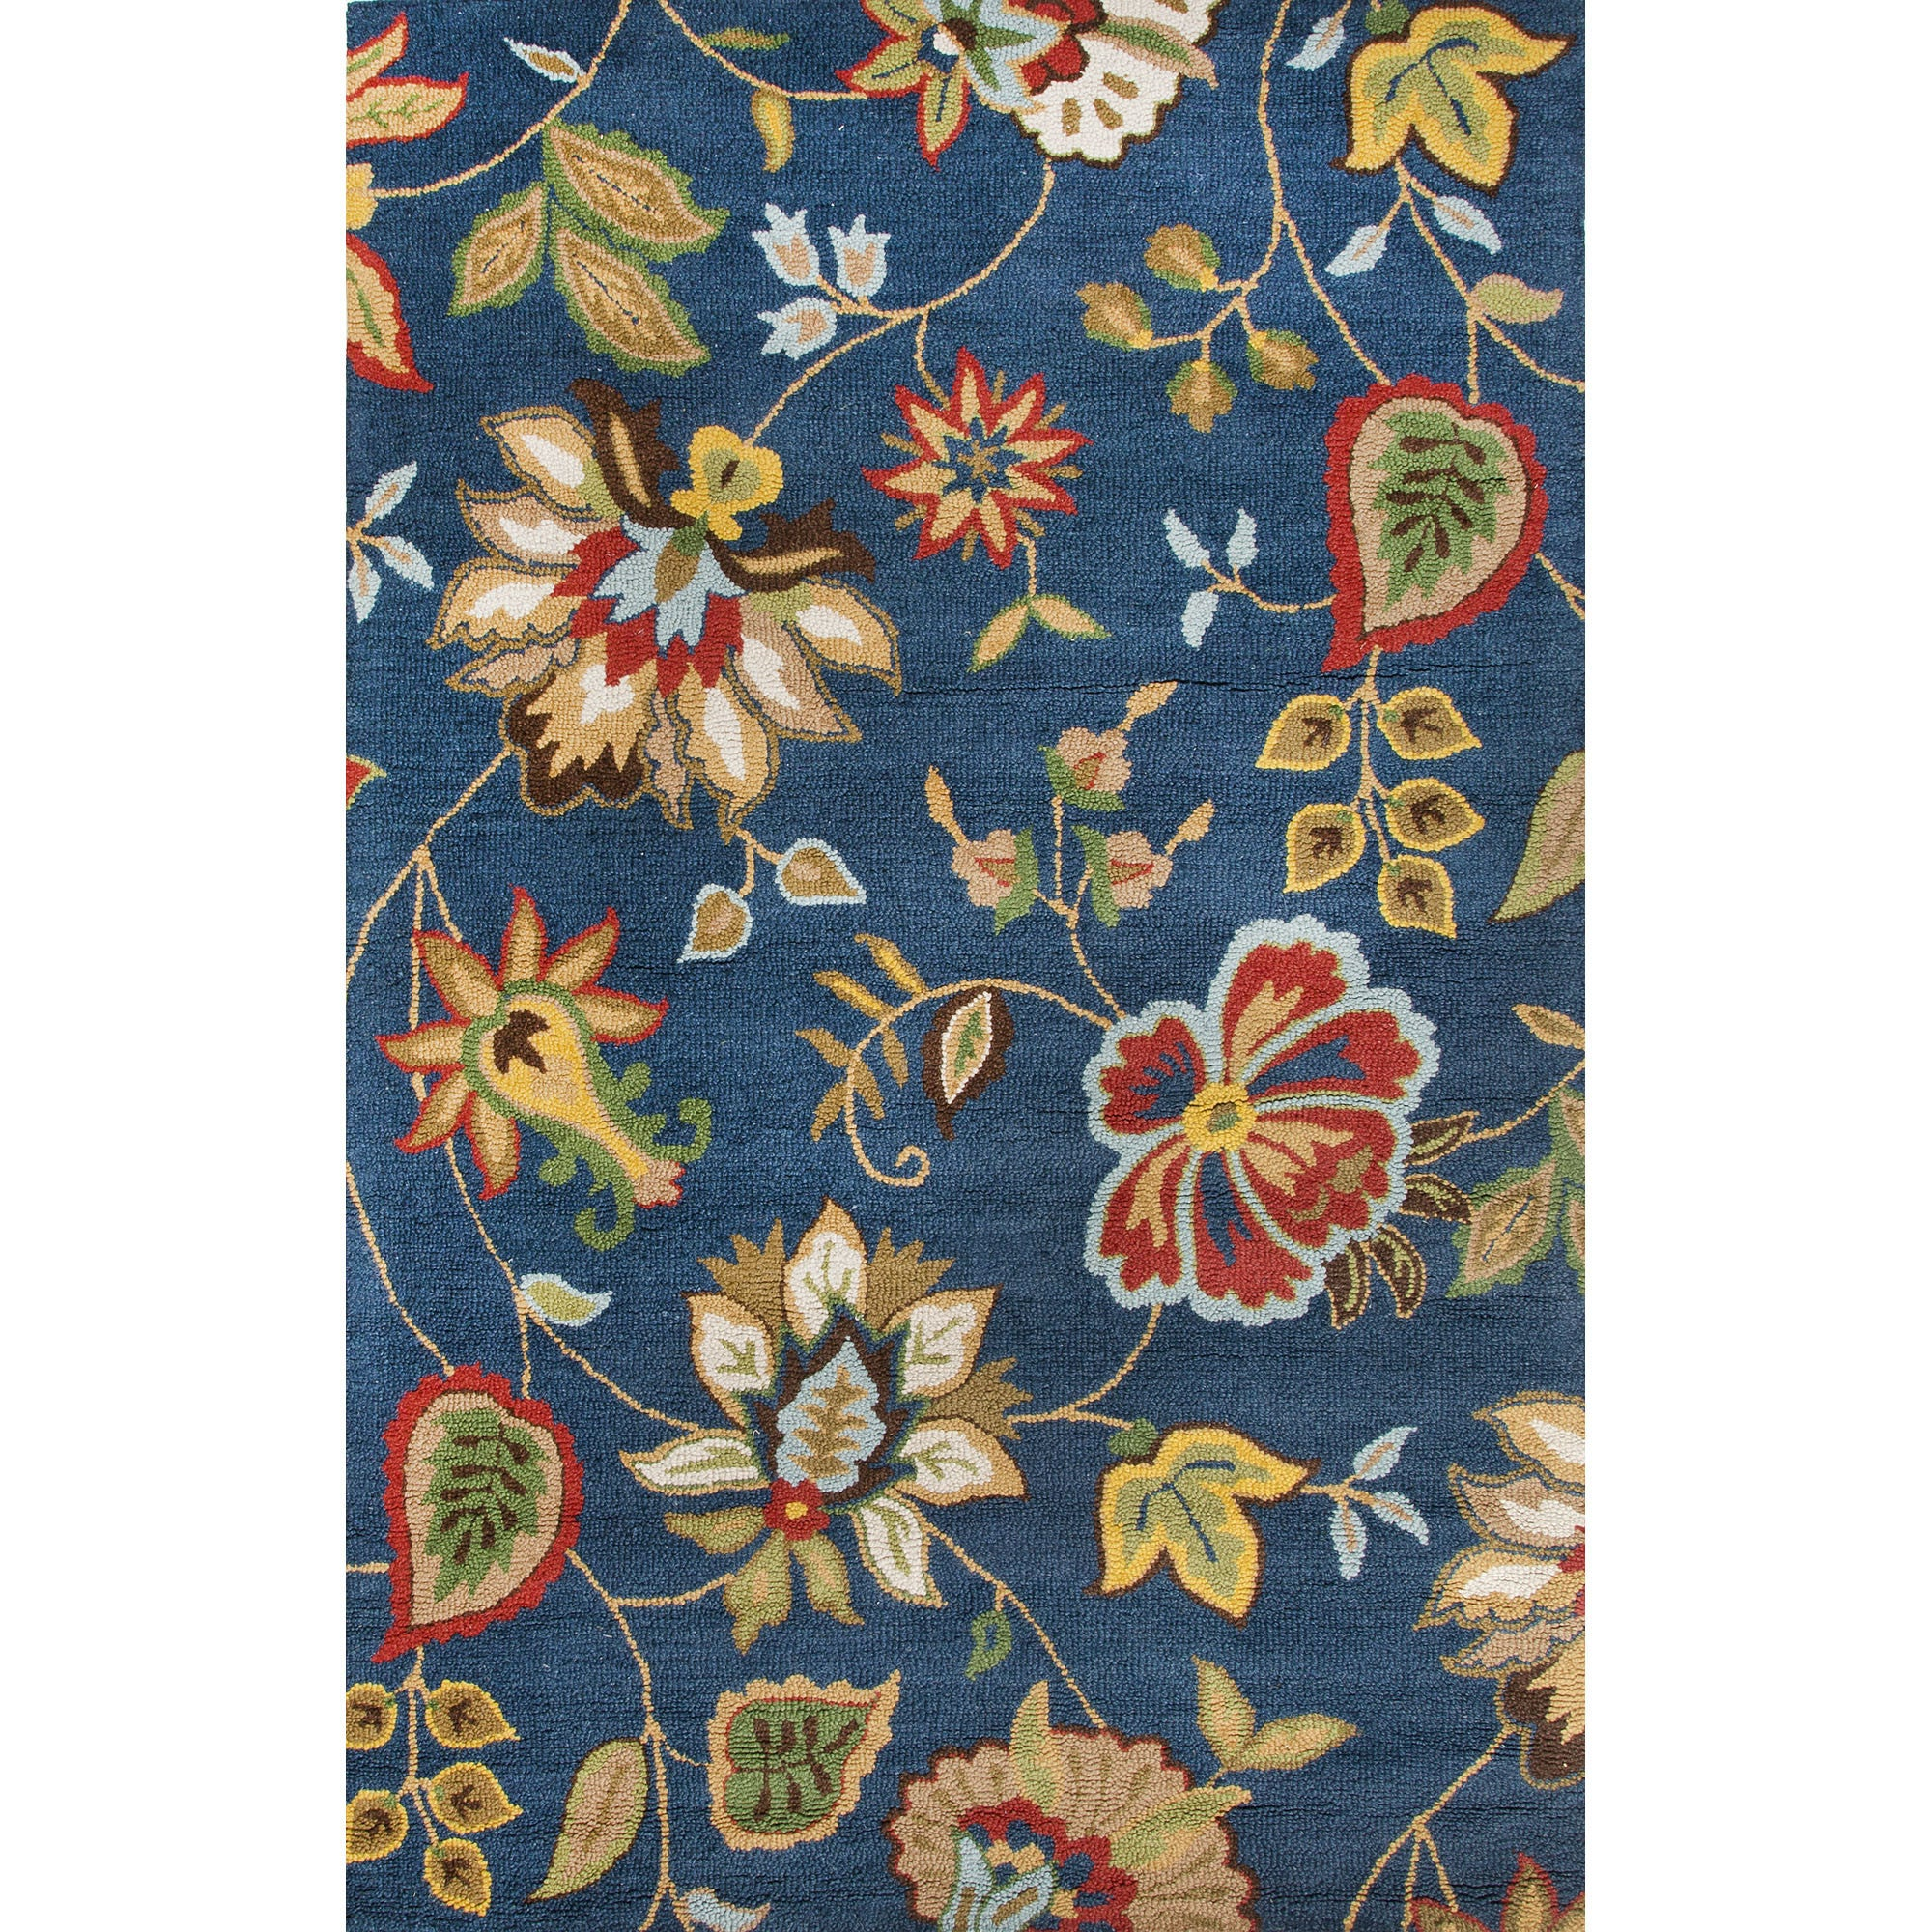 Unique Jaipur Rugs Transitional Floral Pattern Blue/Multi Wool Area Rug  YU48